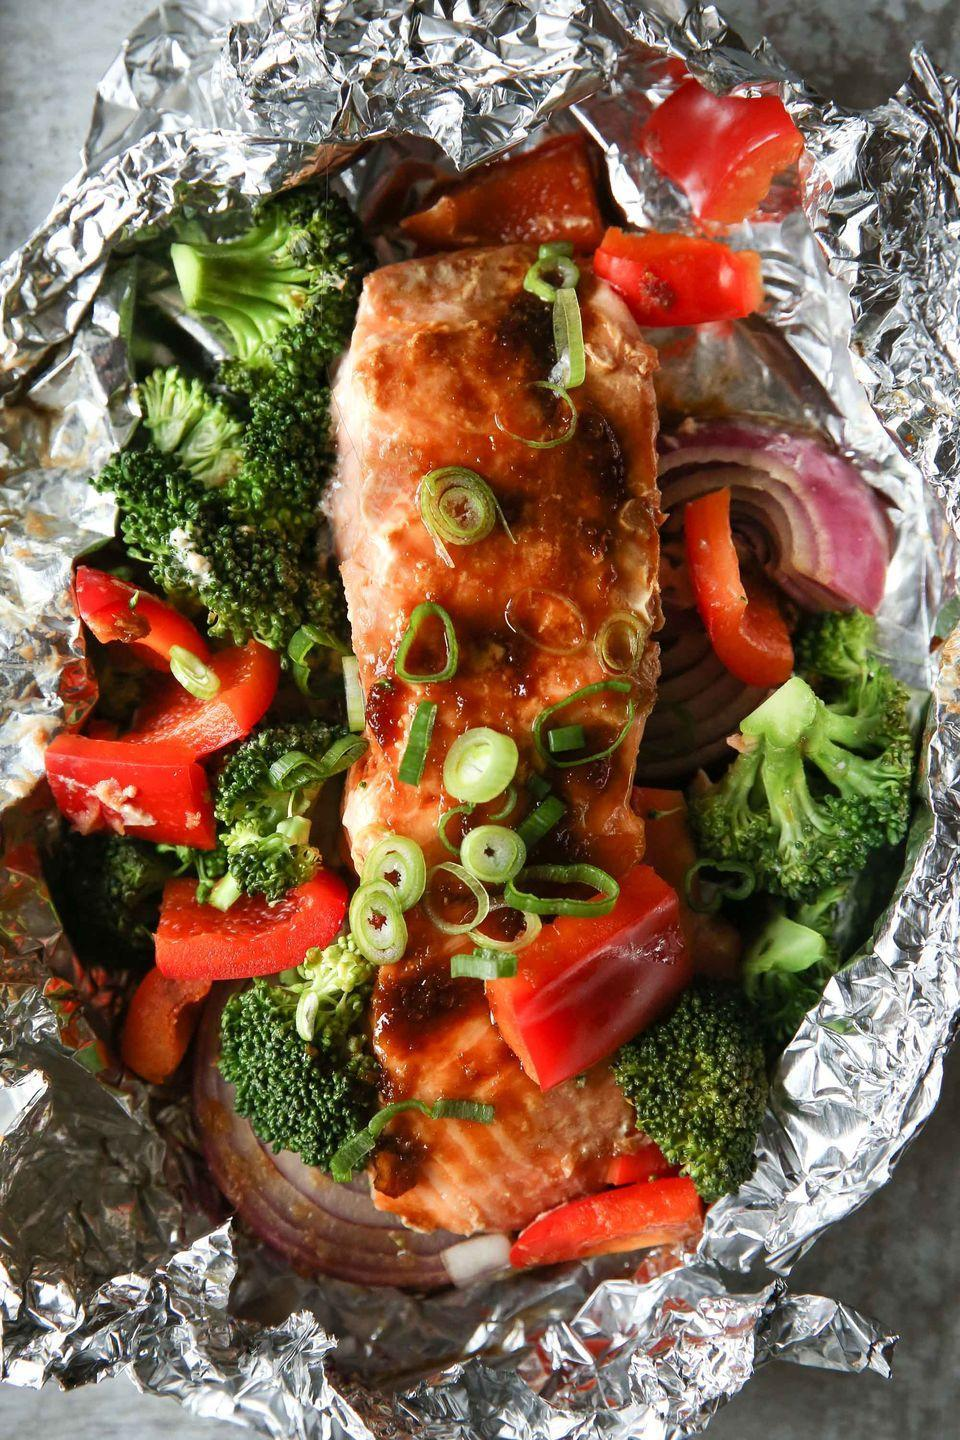 "<p>*no clean-up required.</p><p>Get the <a href=""https://www.delish.com/uk/cooking/recipes/a29840607/salmon-foil-packs-recipe/"" rel=""nofollow noopener"" target=""_blank"" data-ylk=""slk:Salmon Foil Packs"" class=""link rapid-noclick-resp"">Salmon Foil Packs</a> recipe. </p>"